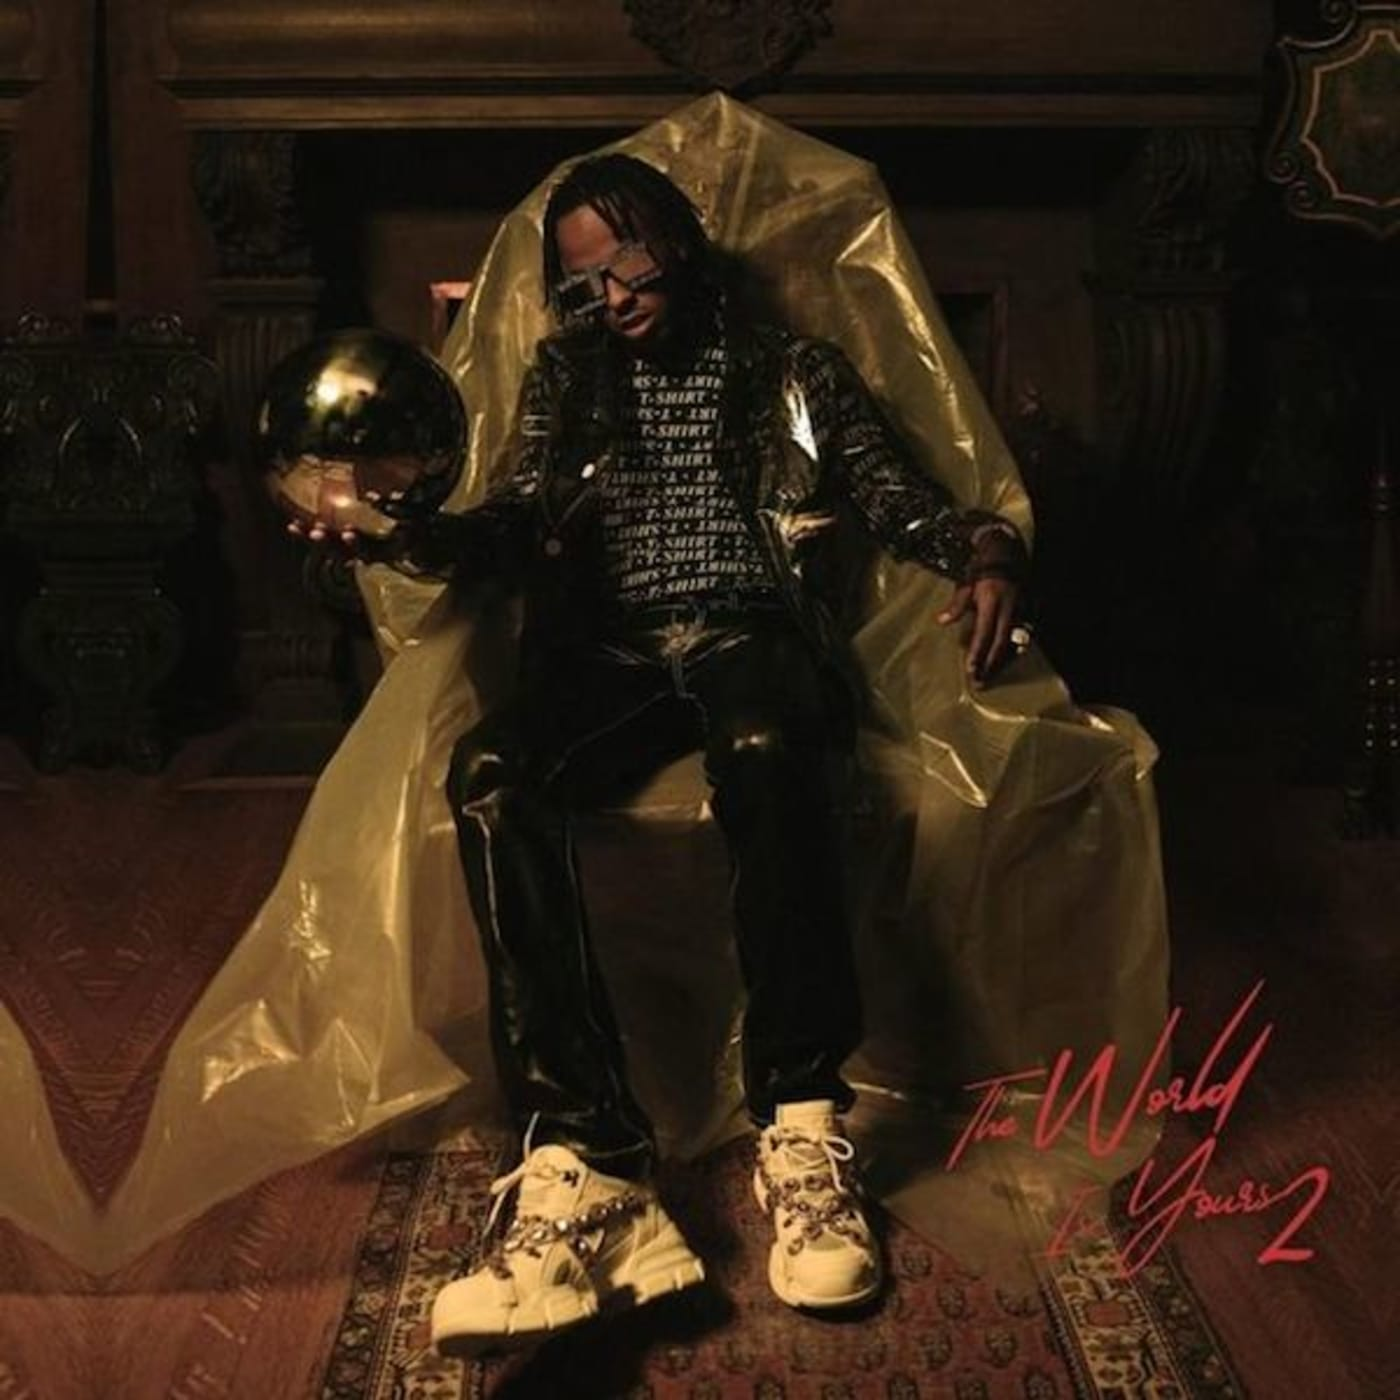 Rich the Kid 'The World Is Yours 2'